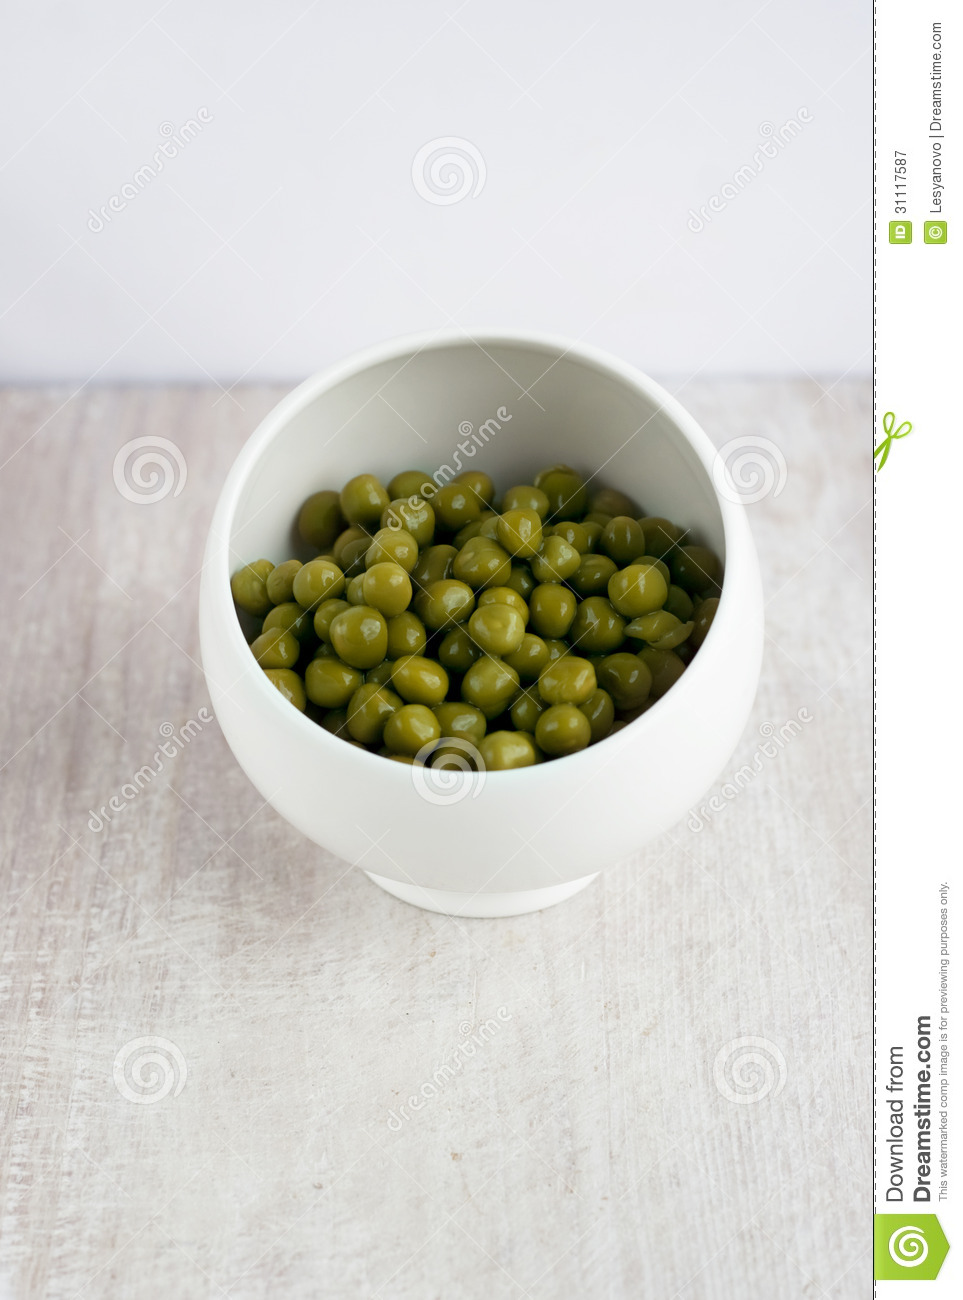 Green Preserved Peas In The China Plate Royalty Free Stock Photography